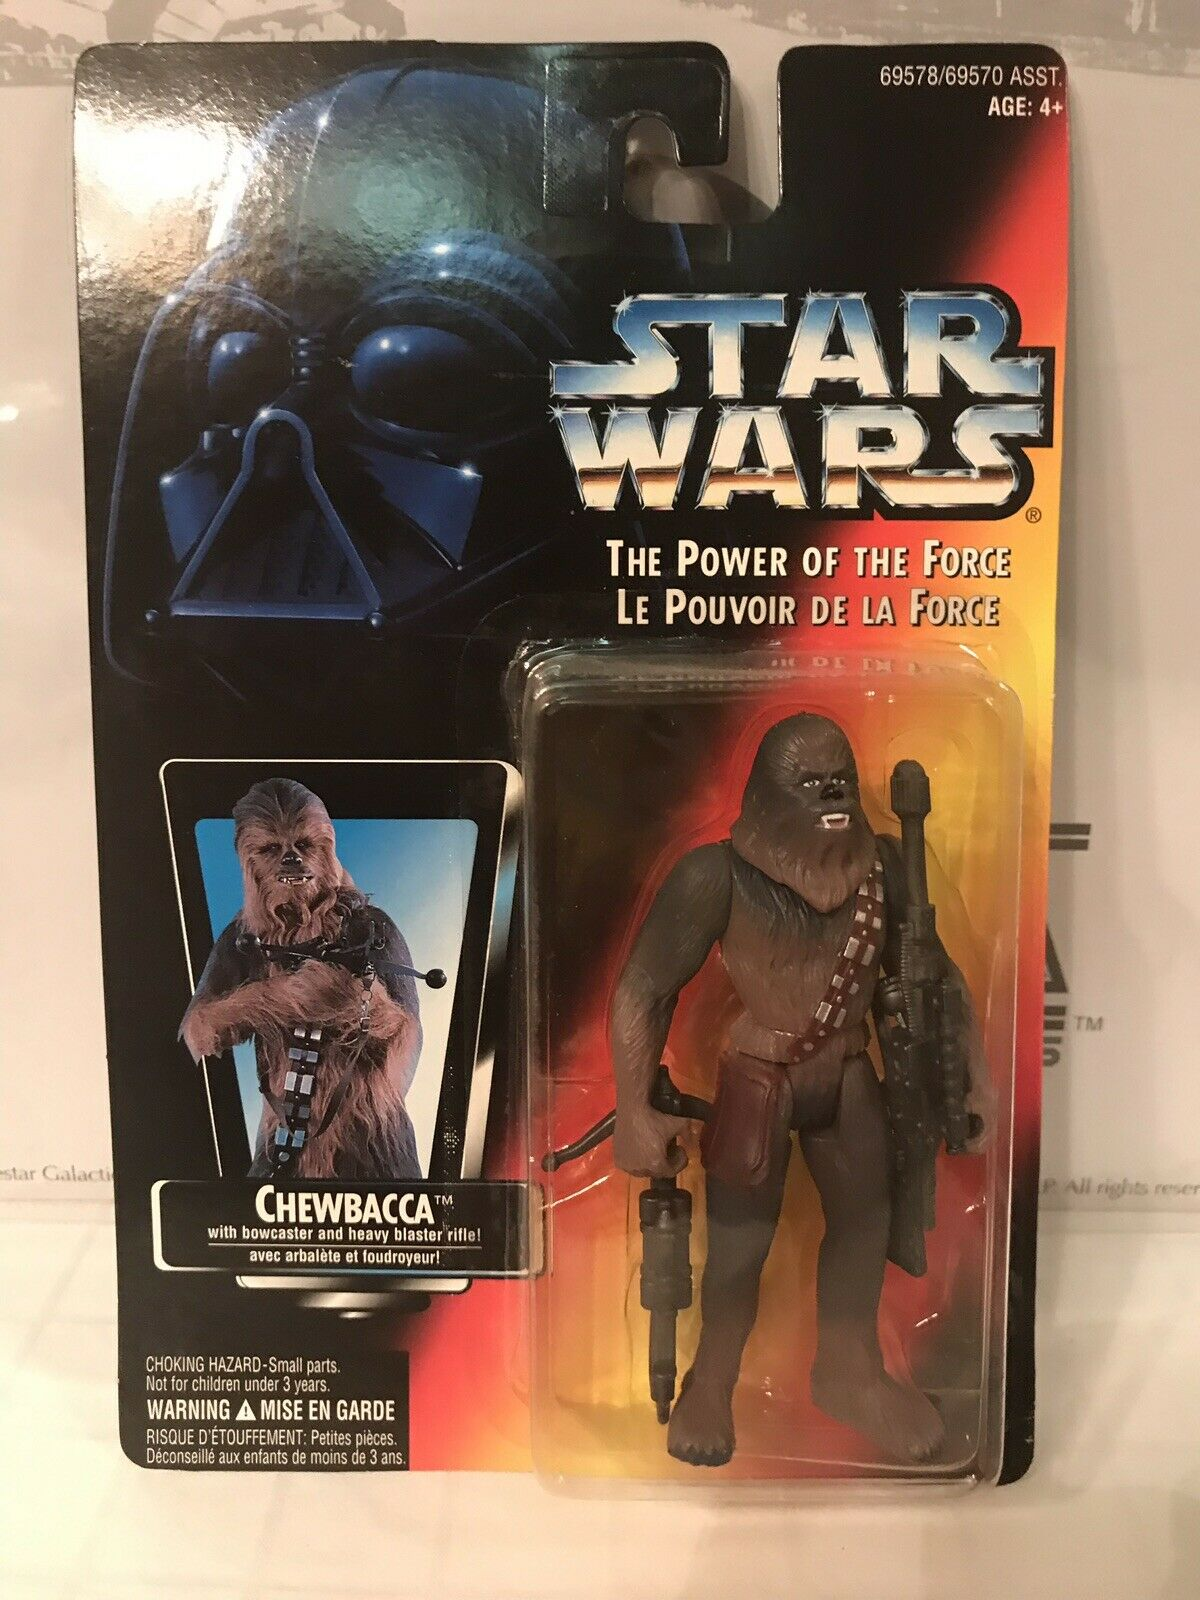 Star Wars The Power Of The Force Chewbacca French Canadian Square Card